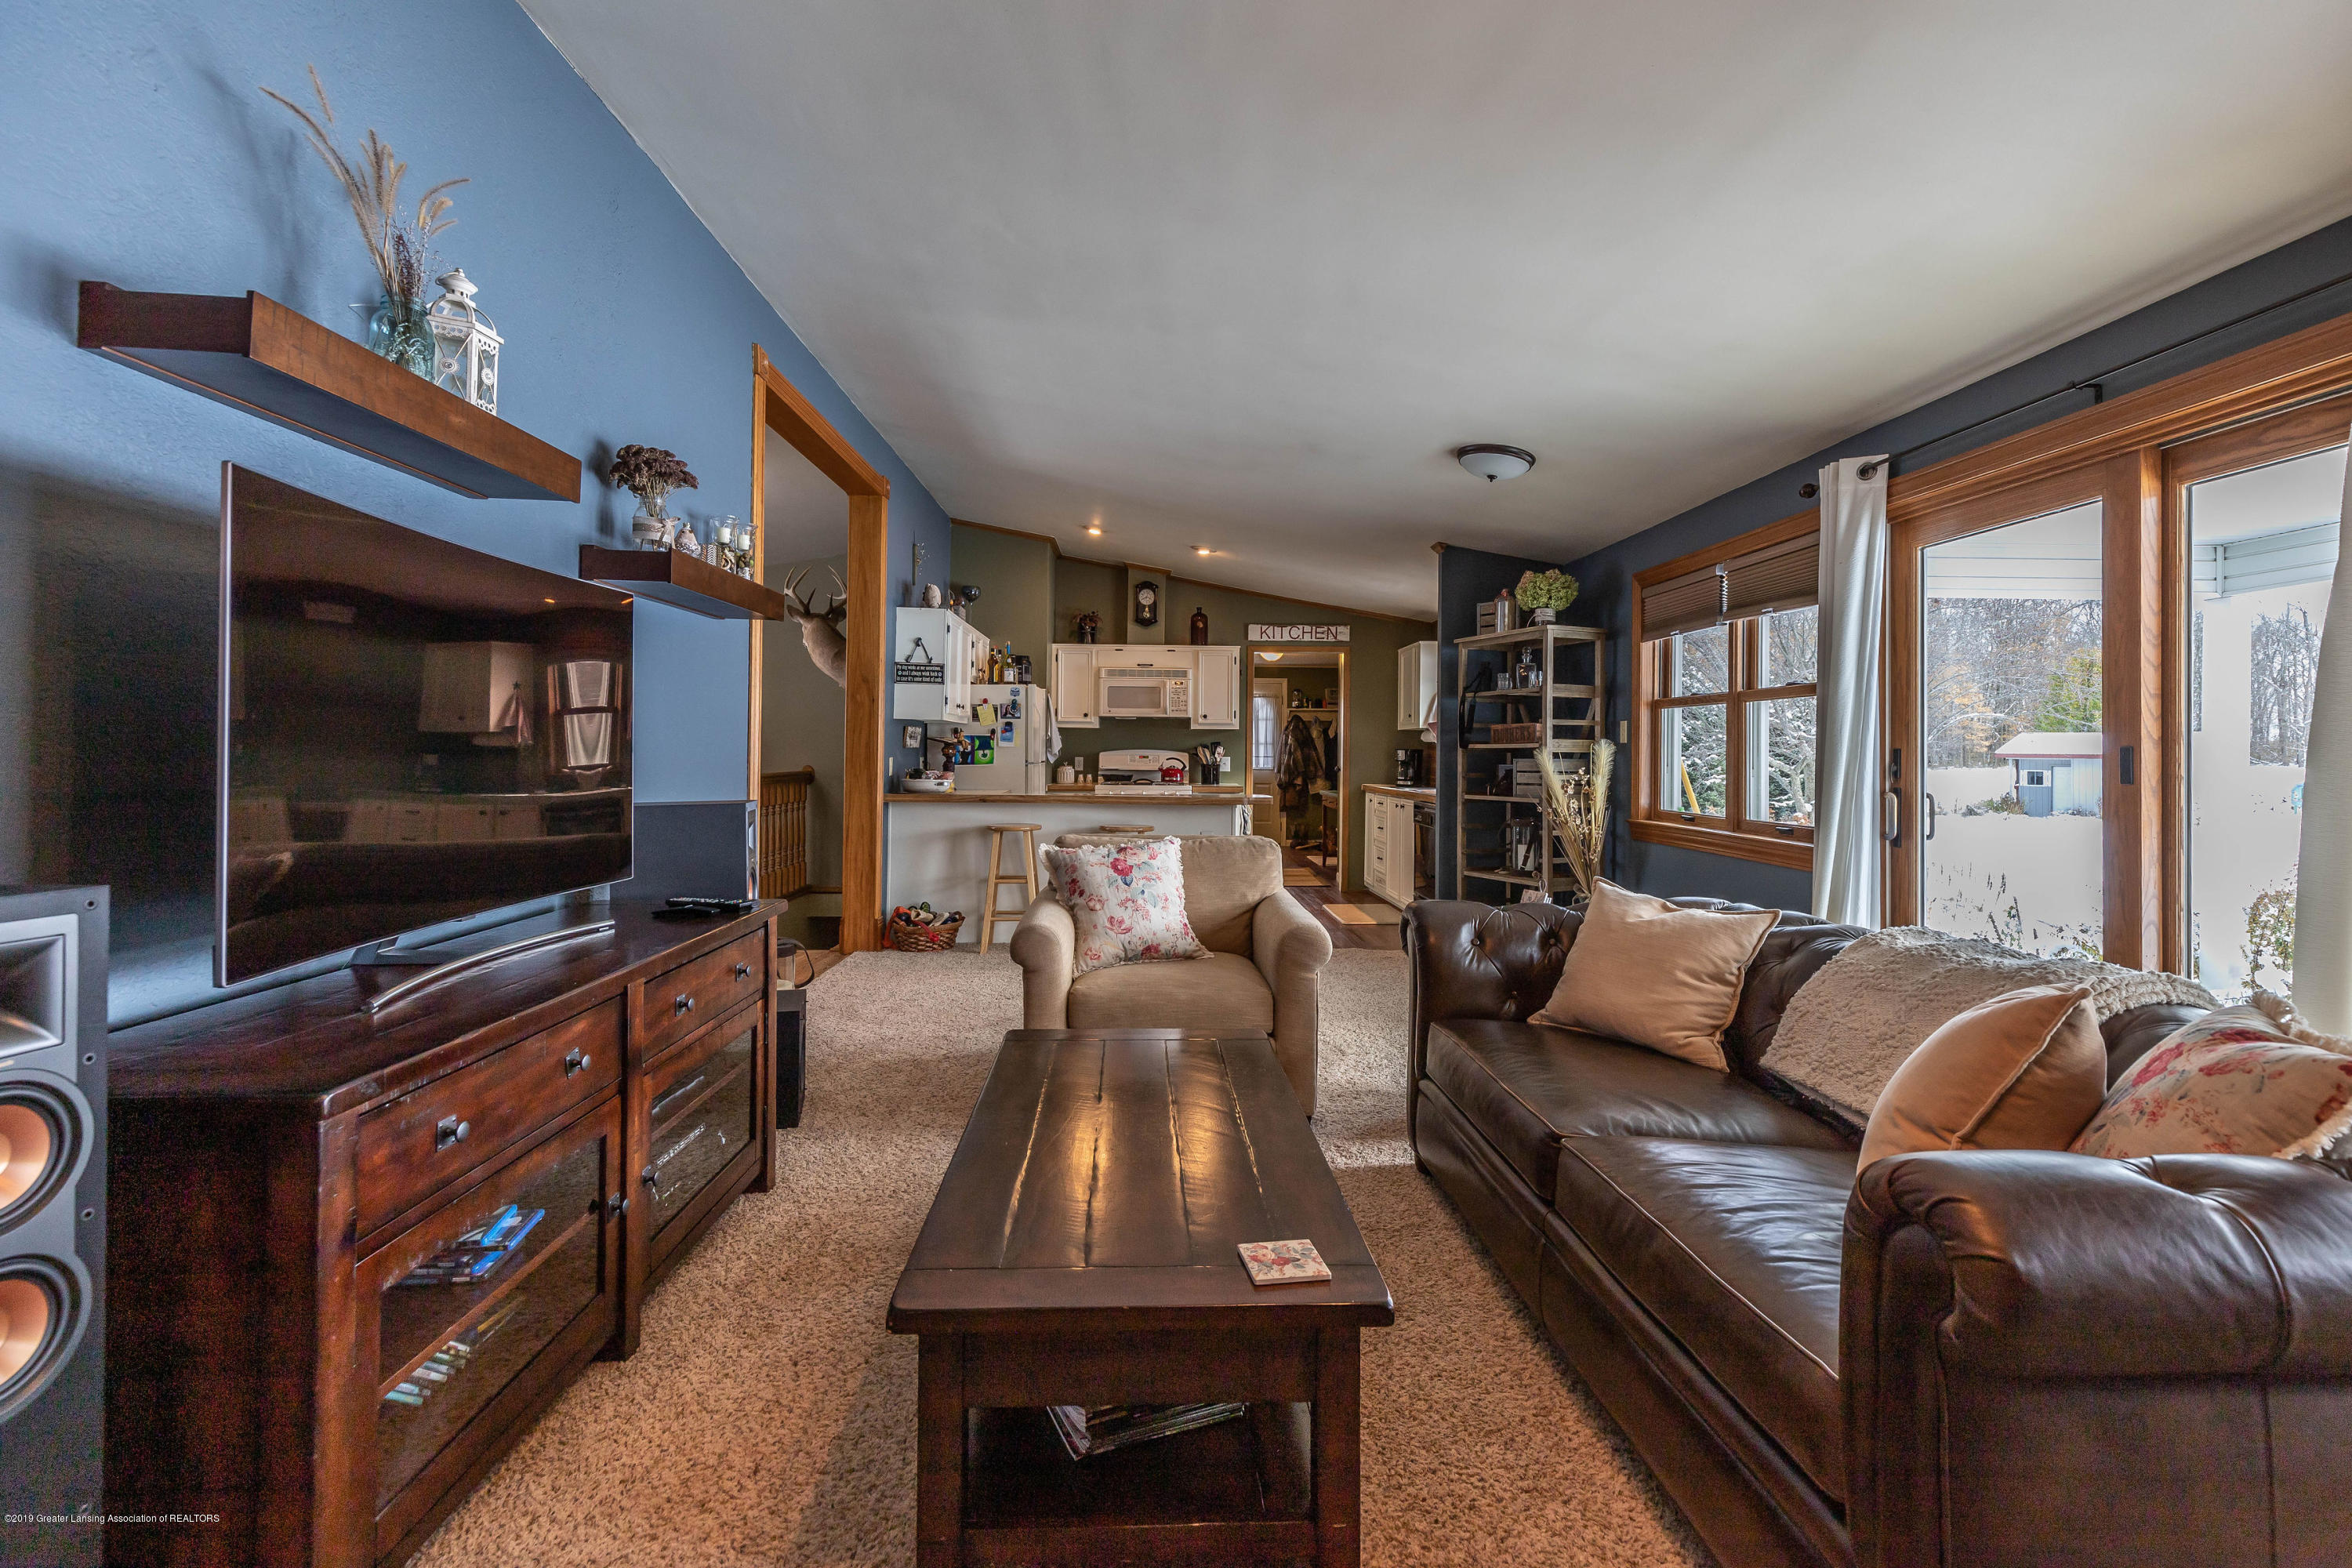 1504 S Chester Rd - chesterliving3(1of1) - 11